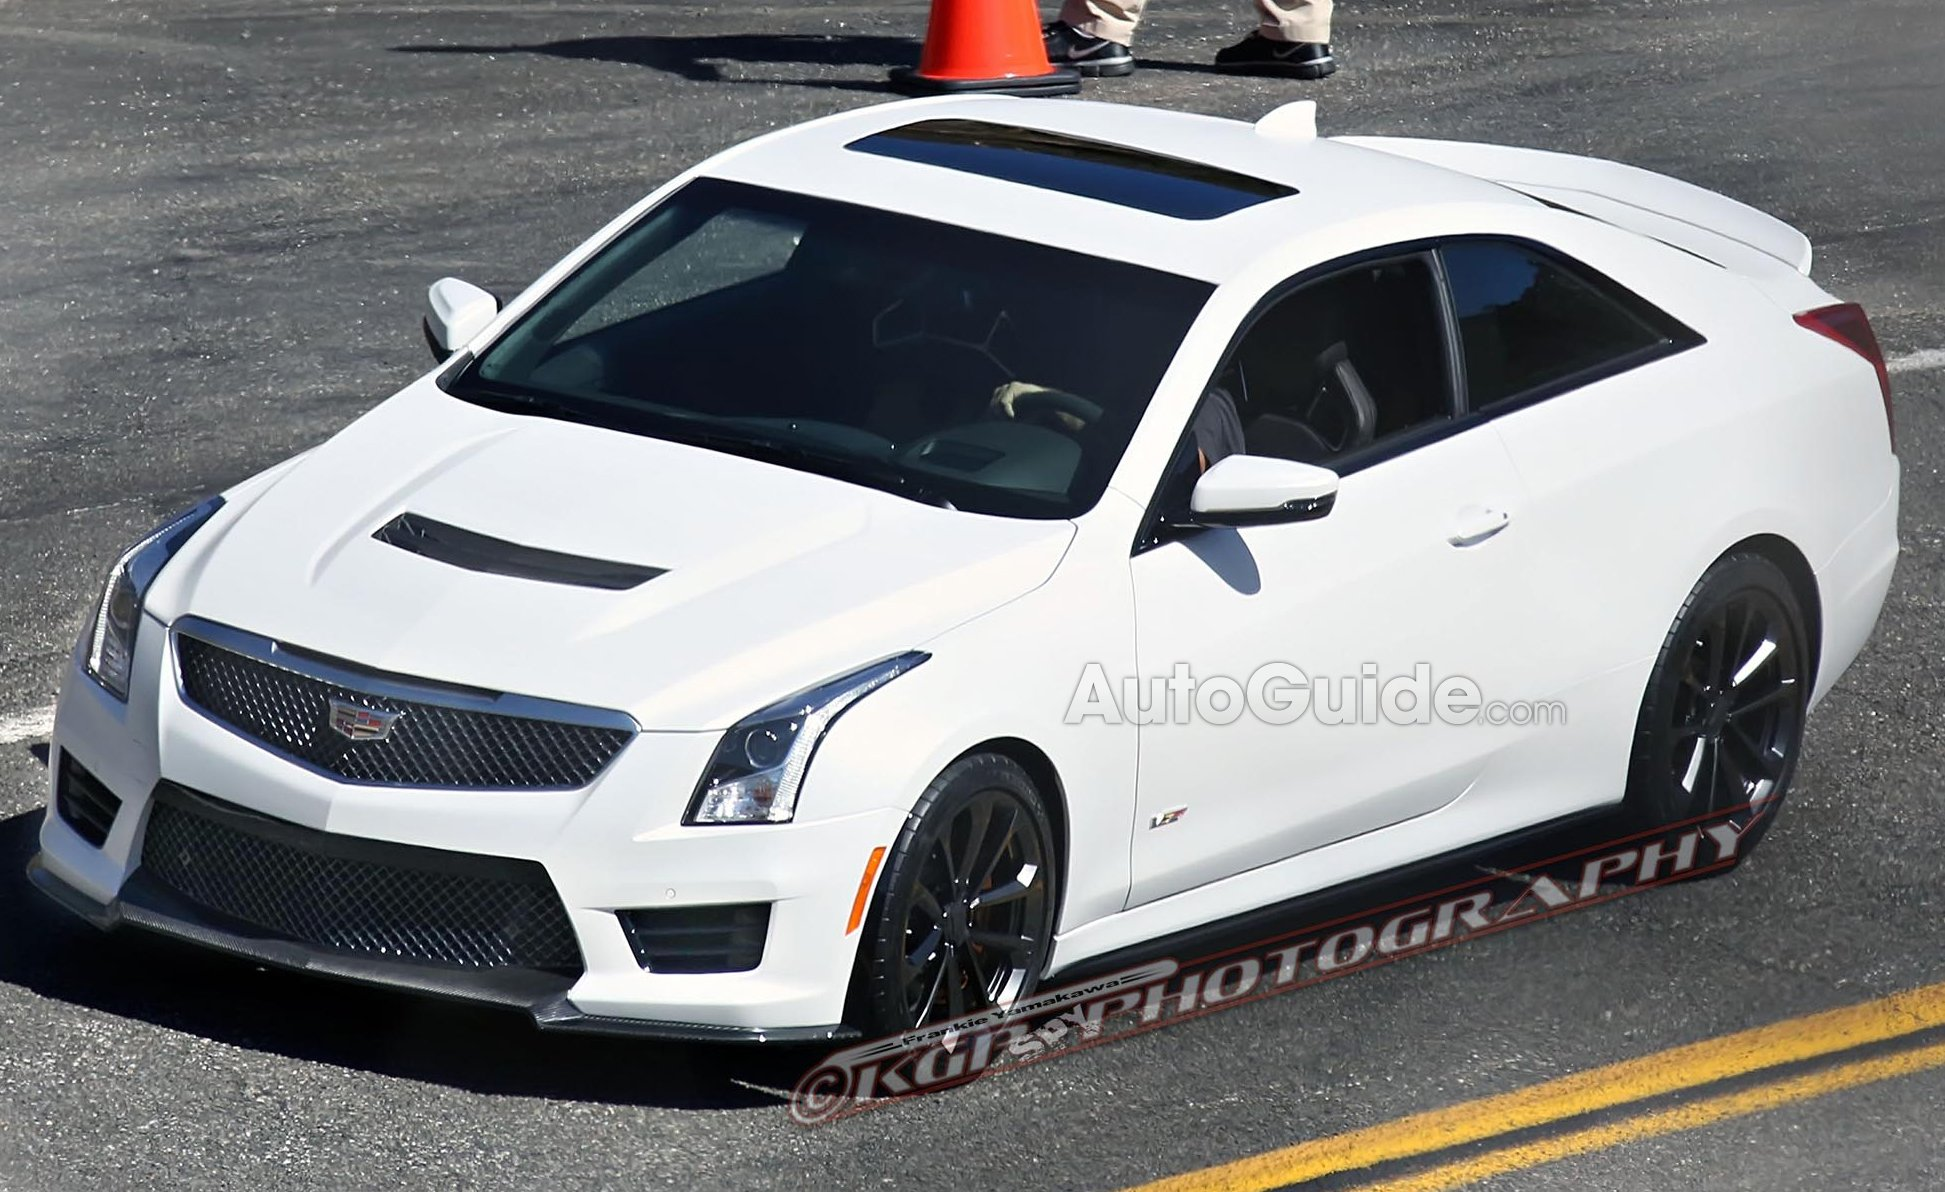 2015 Cadillac ATS-V Coupe Spied Completely Uncovered